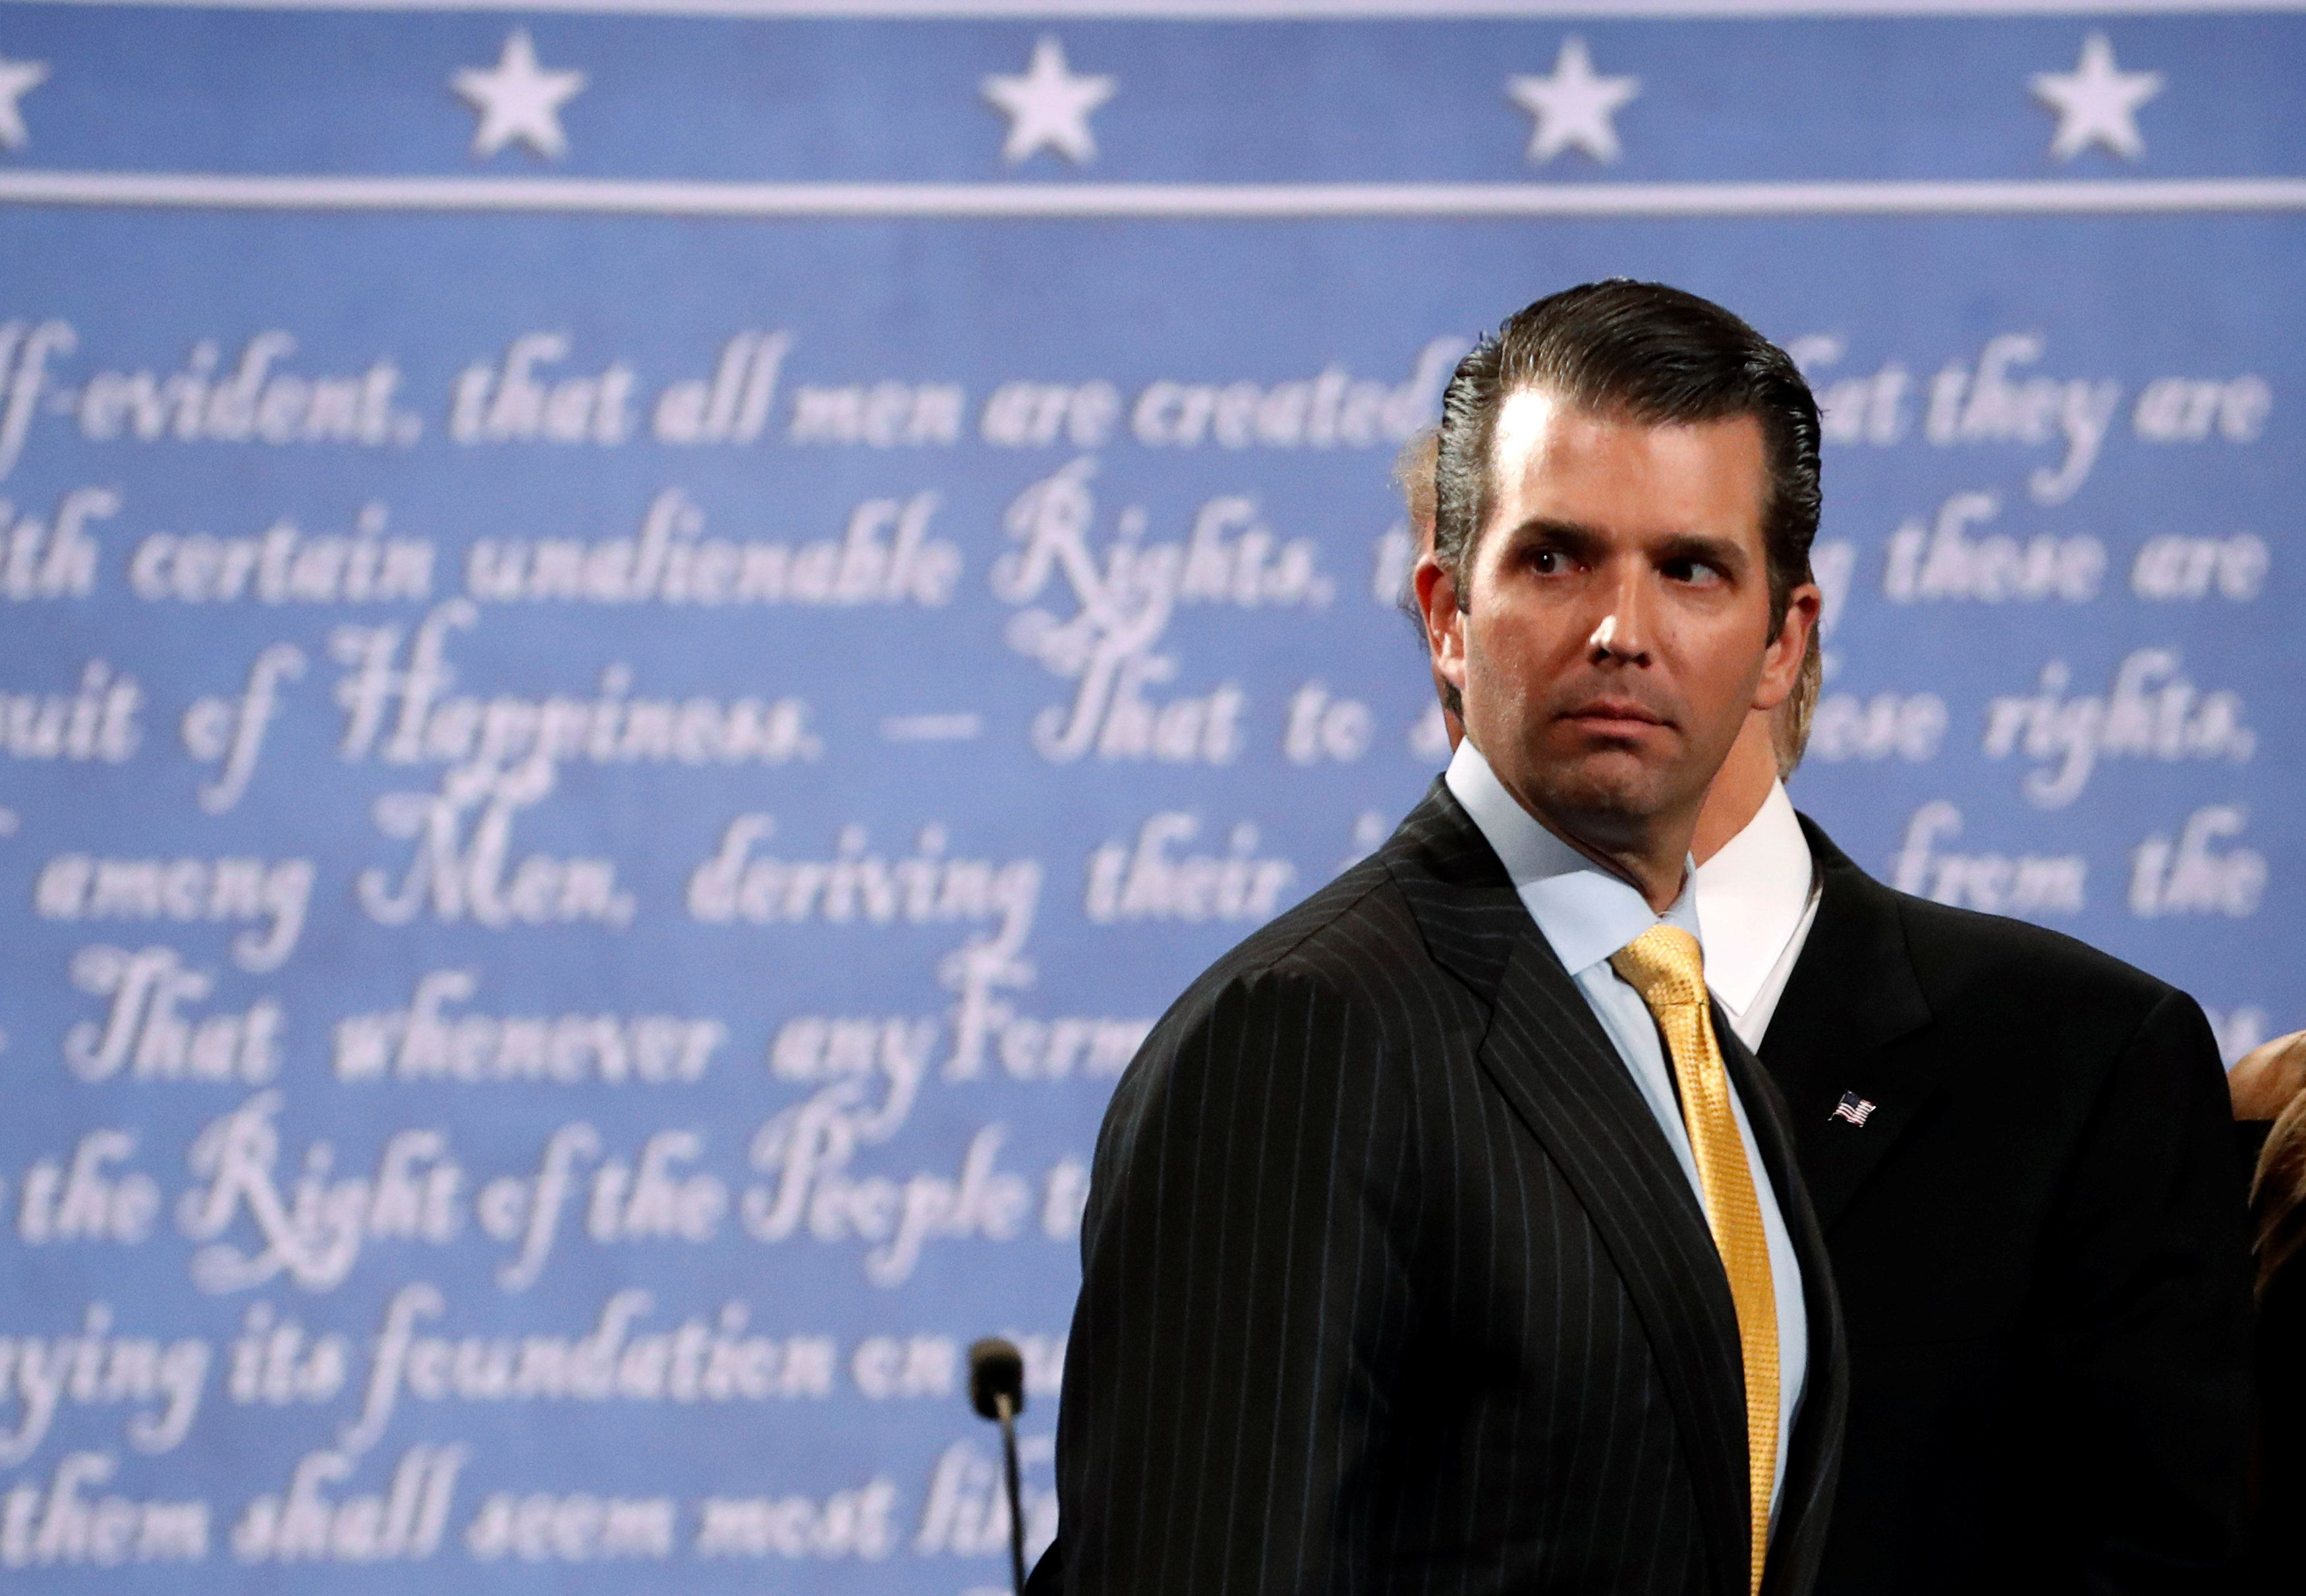 Donald Trump Jr. Communicated With WikiLeaks During The 2016 US Presidential